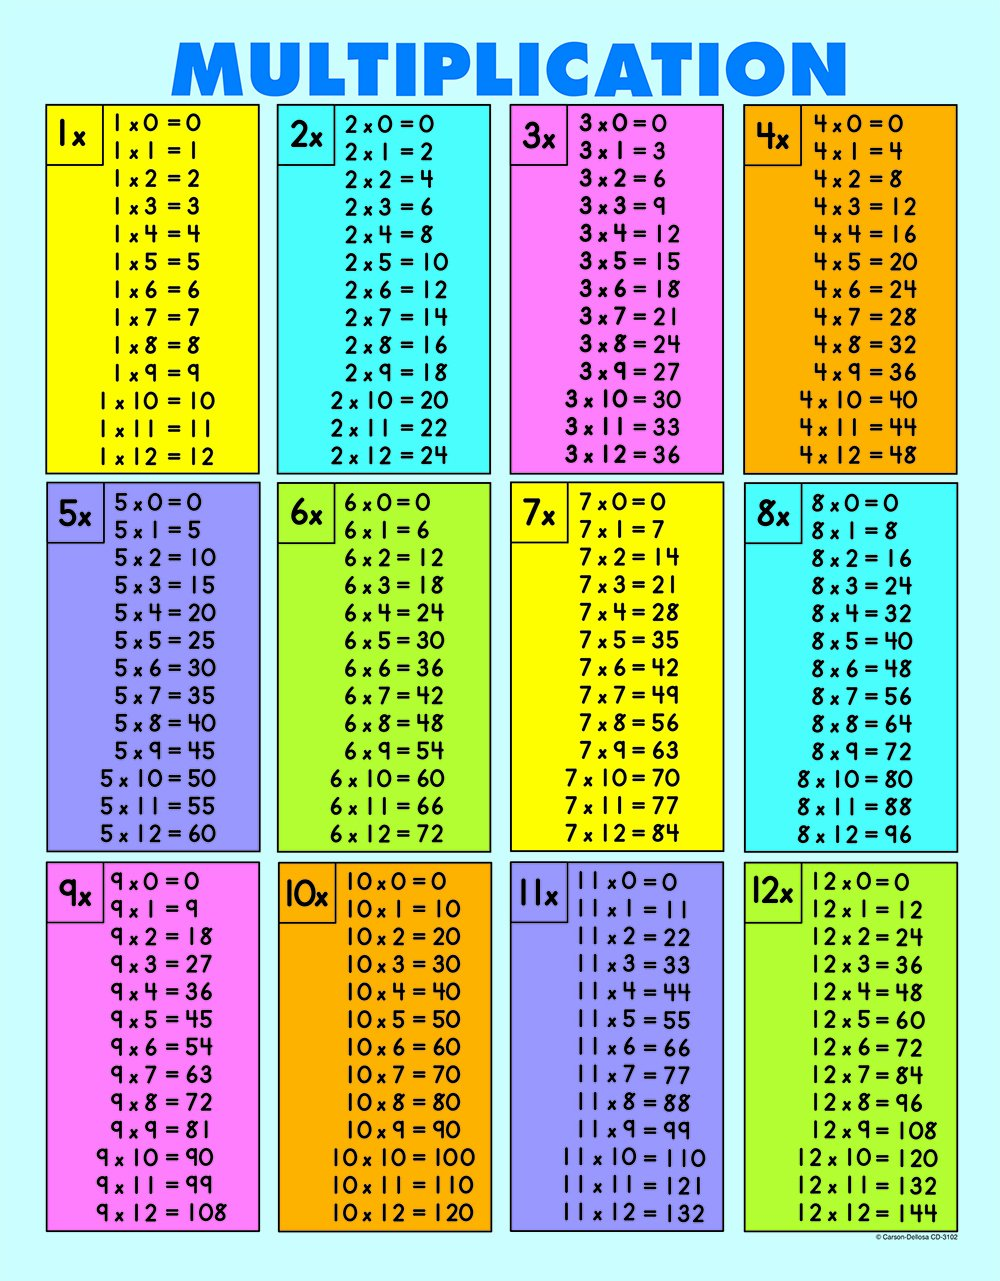 Multiplication facts through 12 popflyboys for Table de multiplication de 6 7 8 9